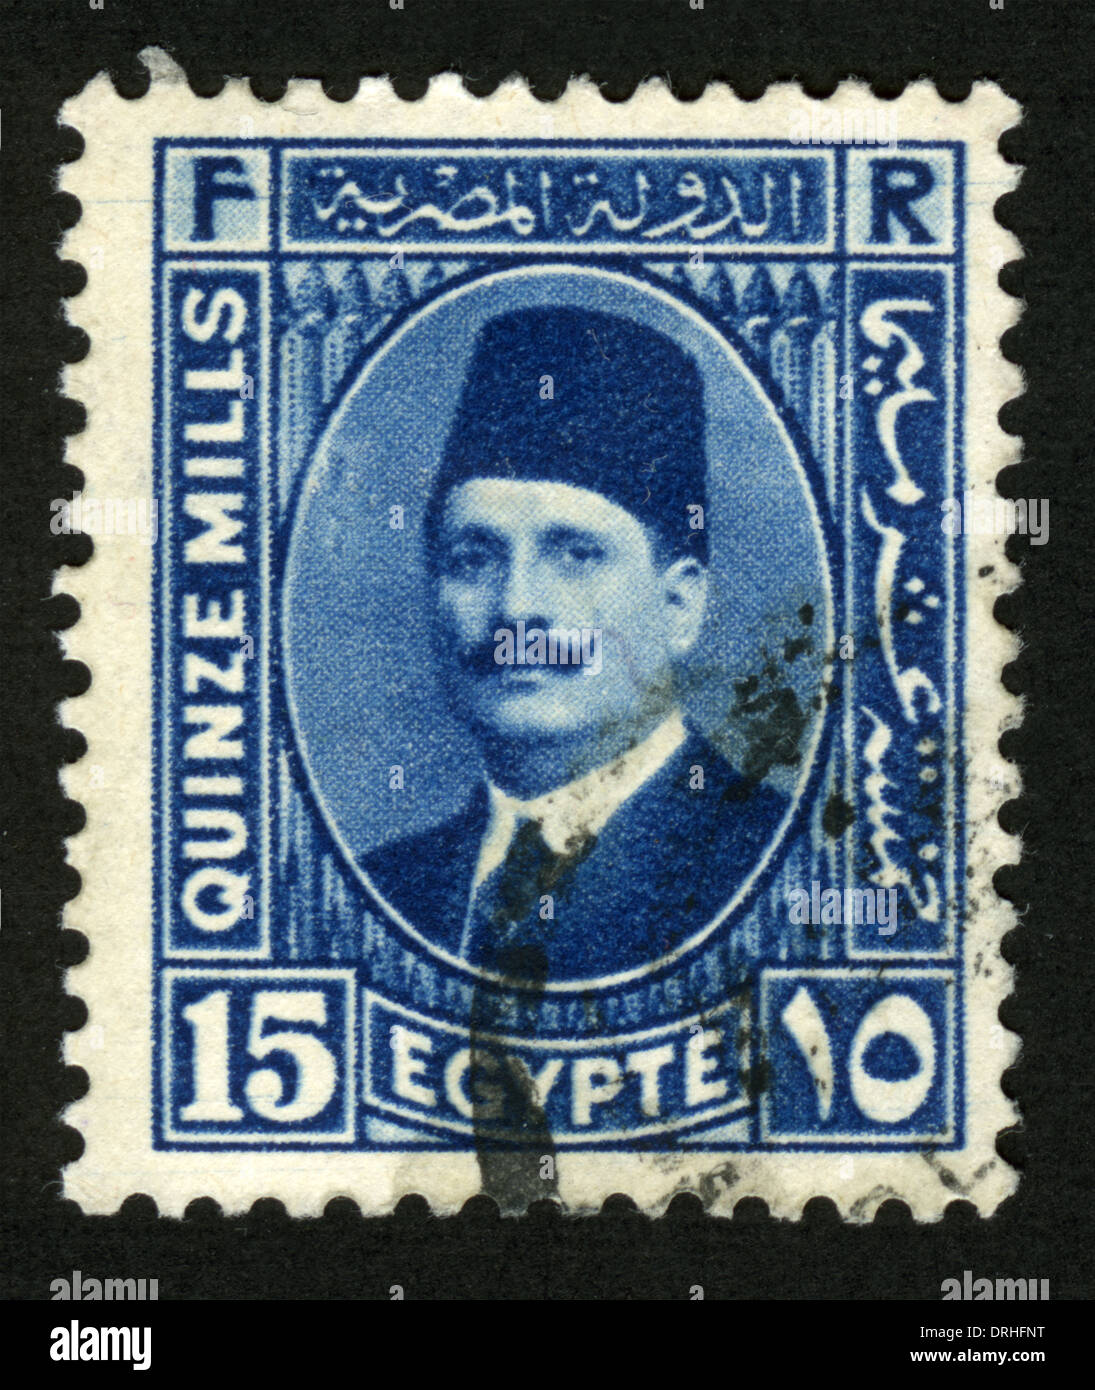 Fuad I King Of Egypt 1917 1936 Postage Stamp EgyptPostage Post Mark Stampportrait